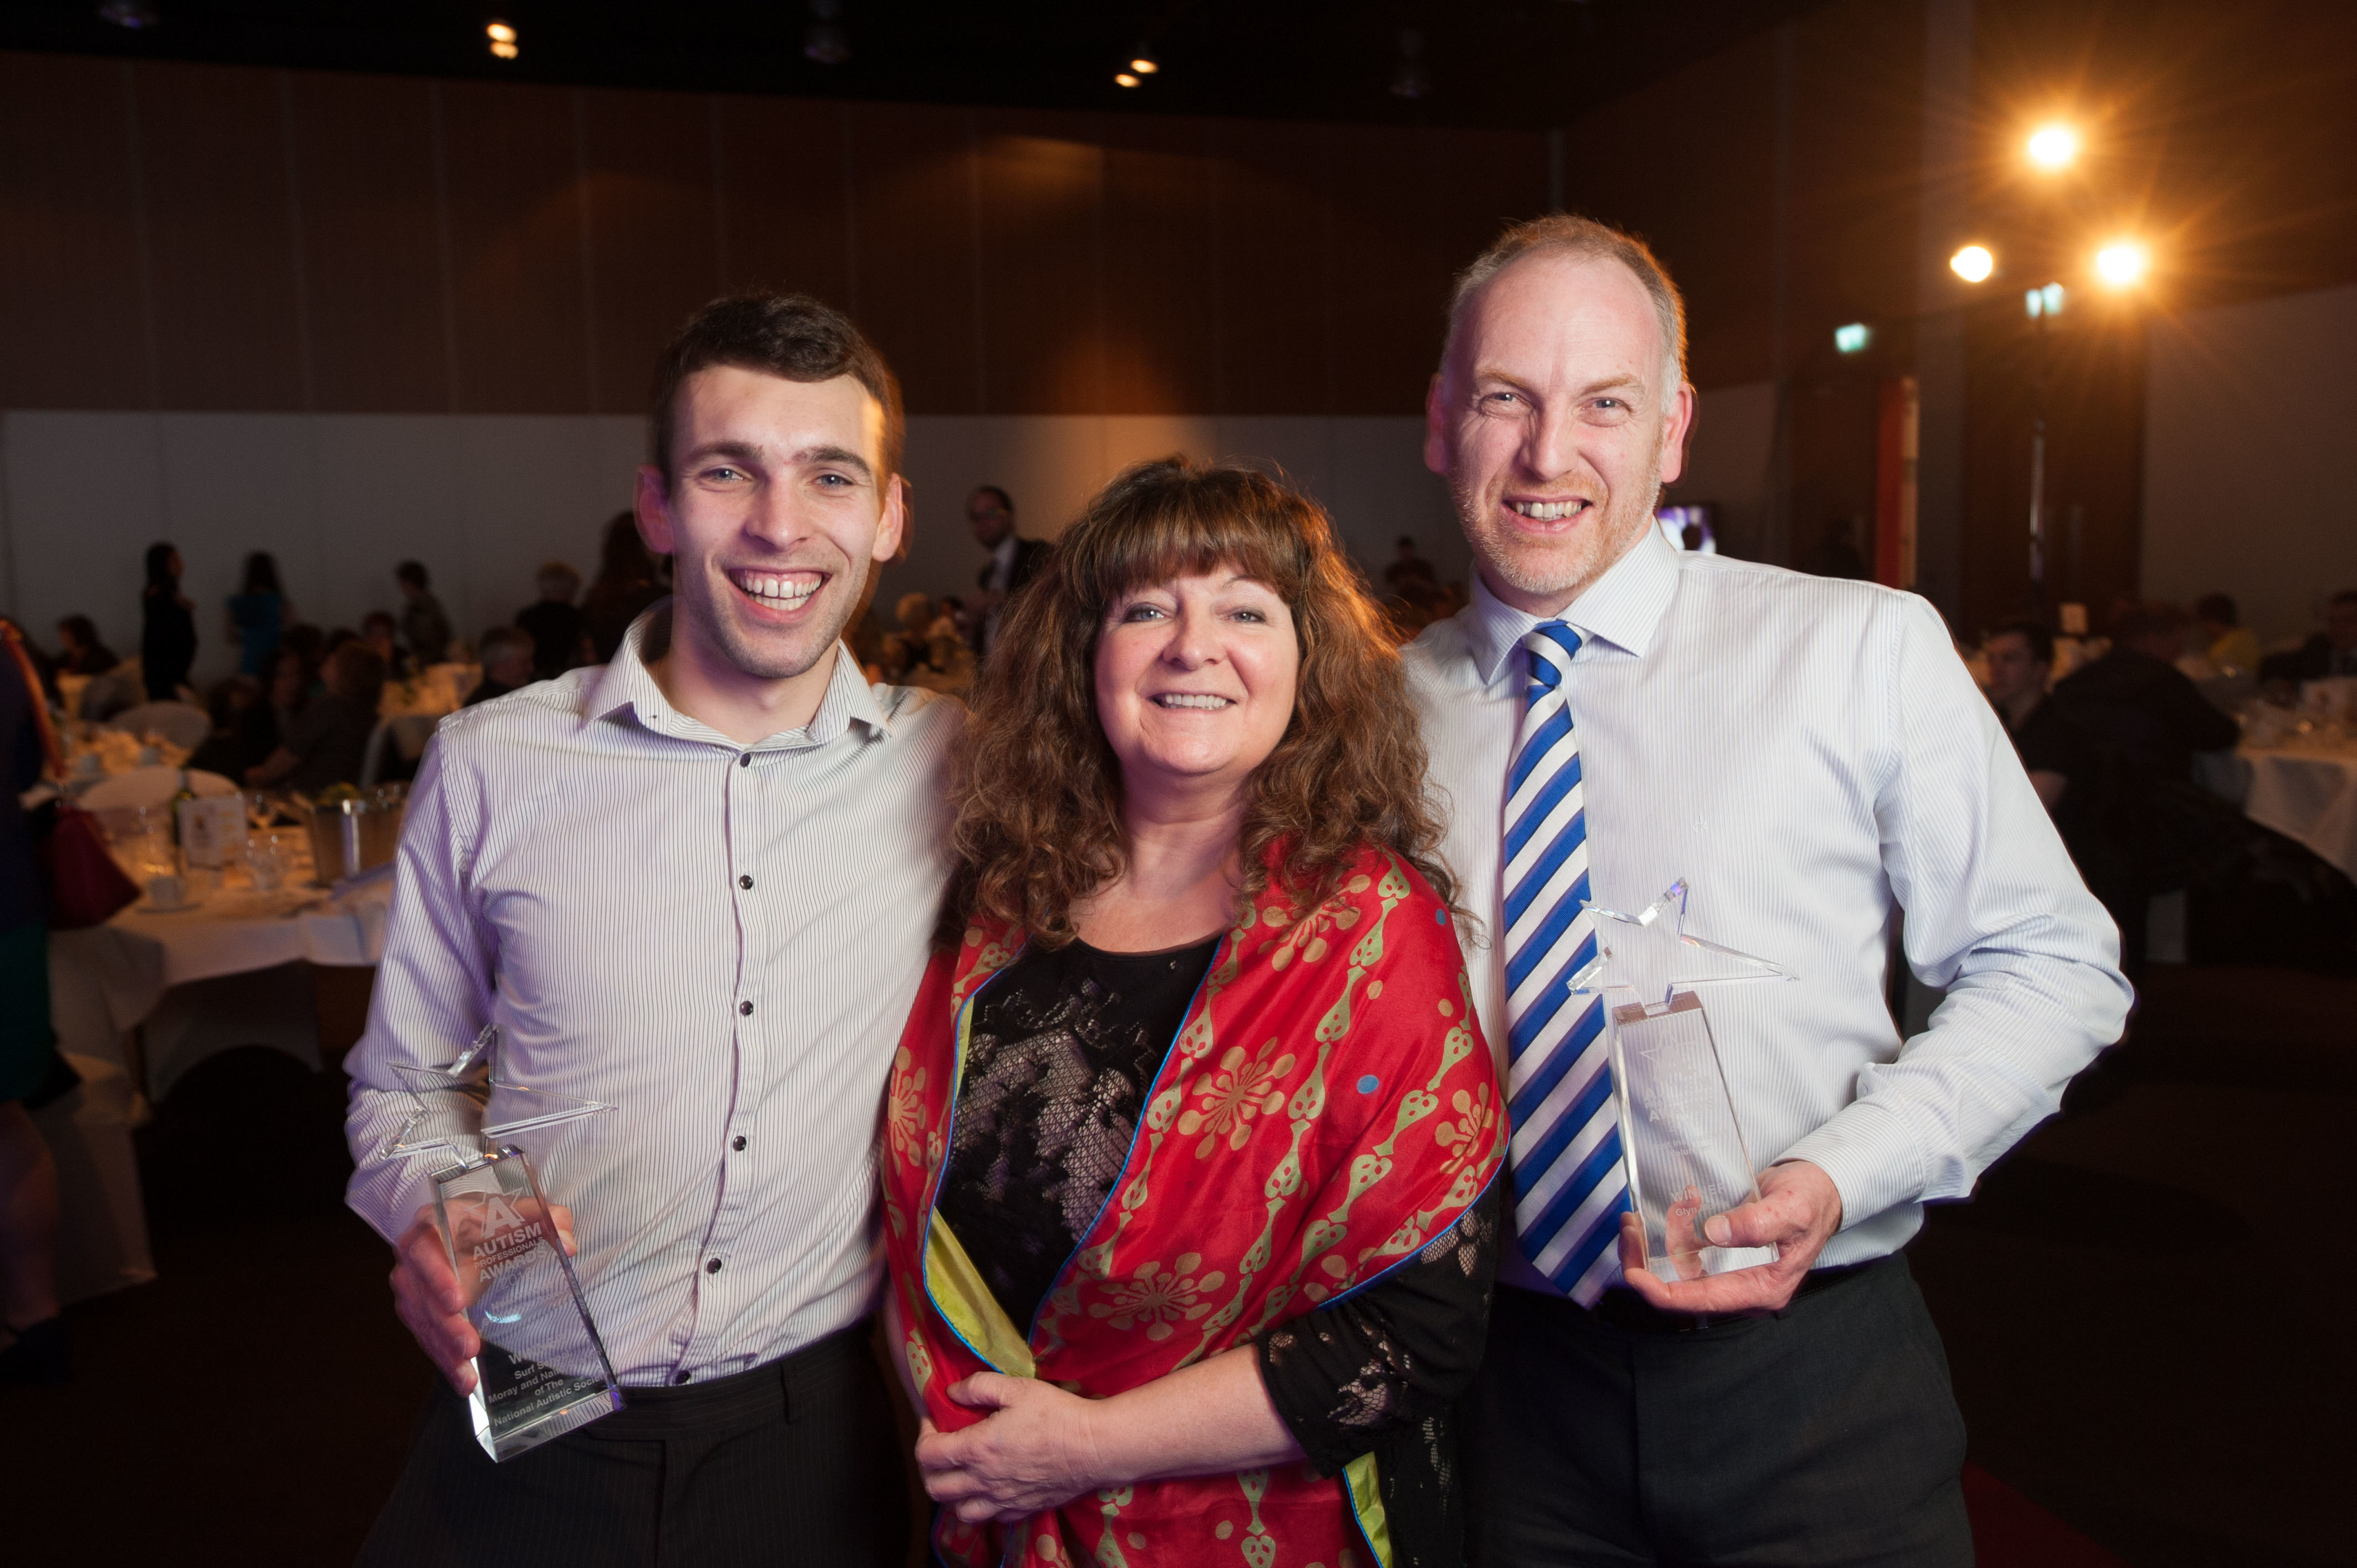 NAS Professional Awards 2016: Kev Anderson, Janey Godley and Glyn MOrris (Scottish Winners)